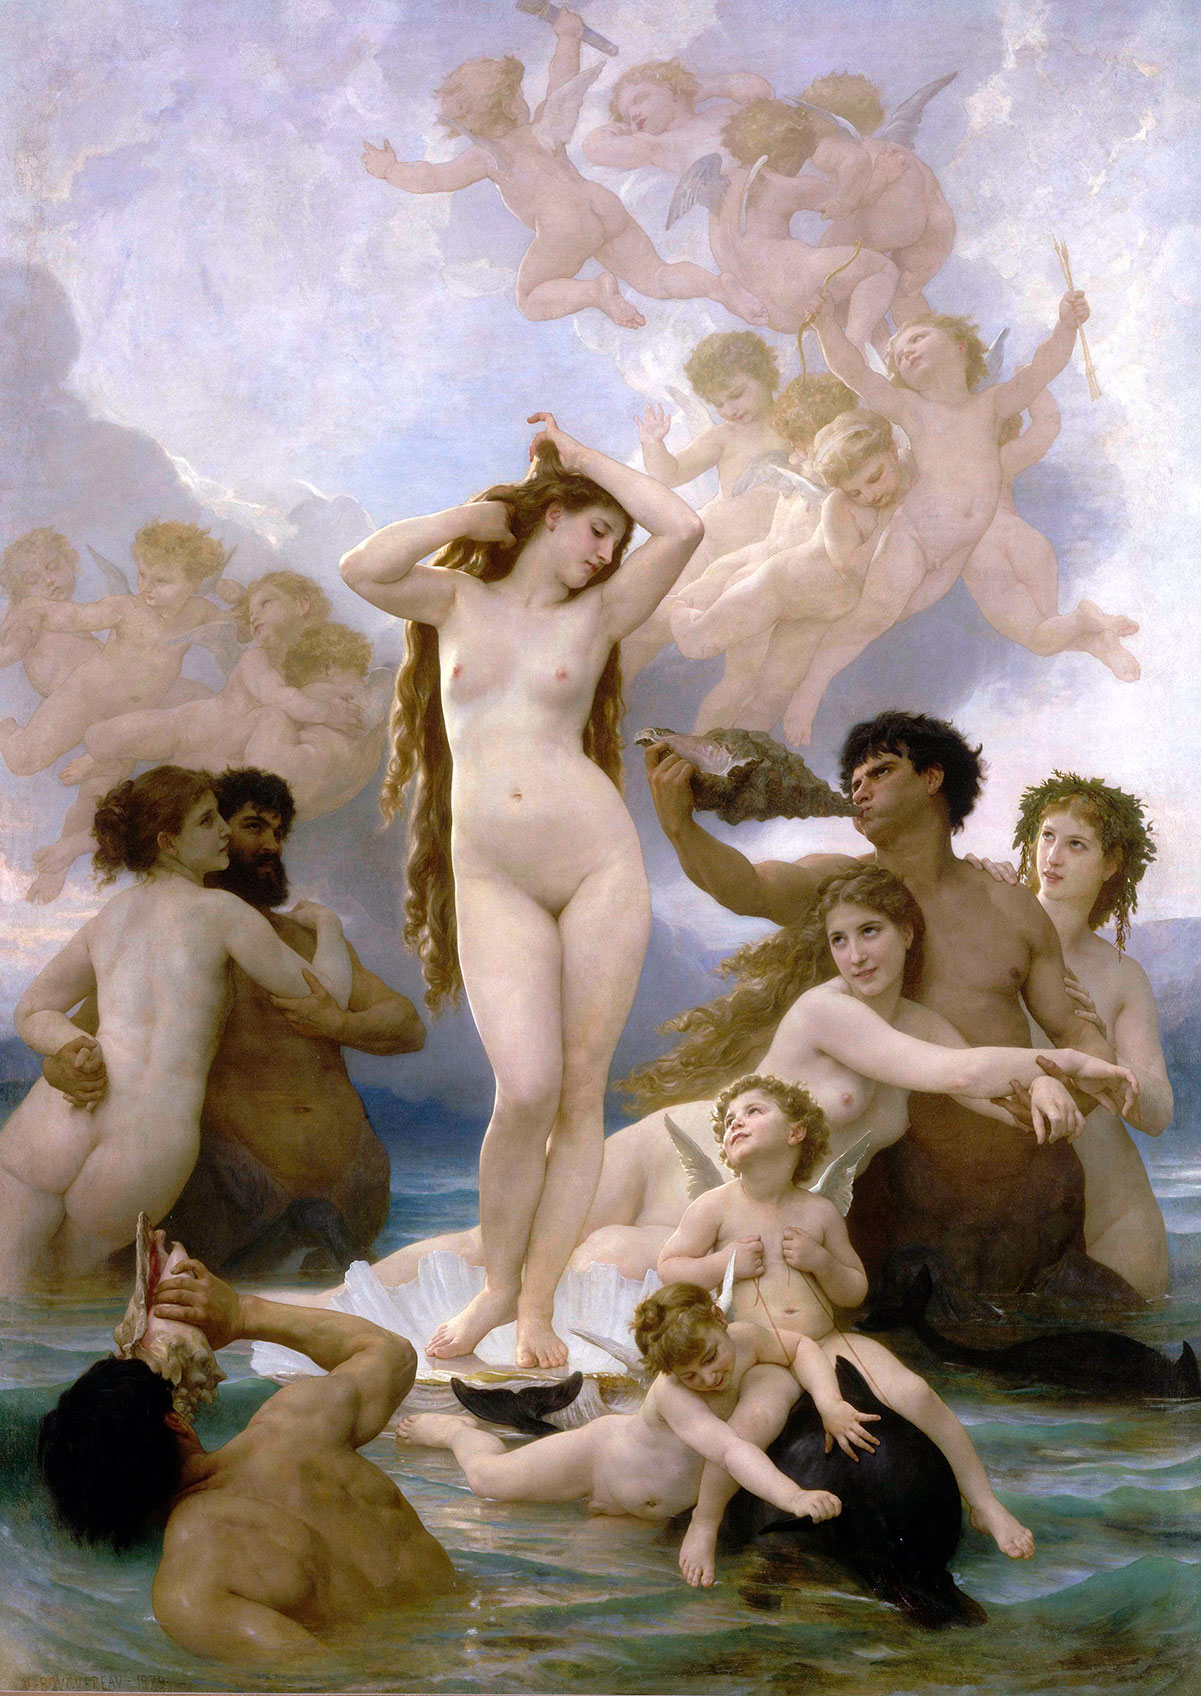 The birth of Venus /La naissance de Vénus/ + Bouguereau, William-Adolphe *magnifico